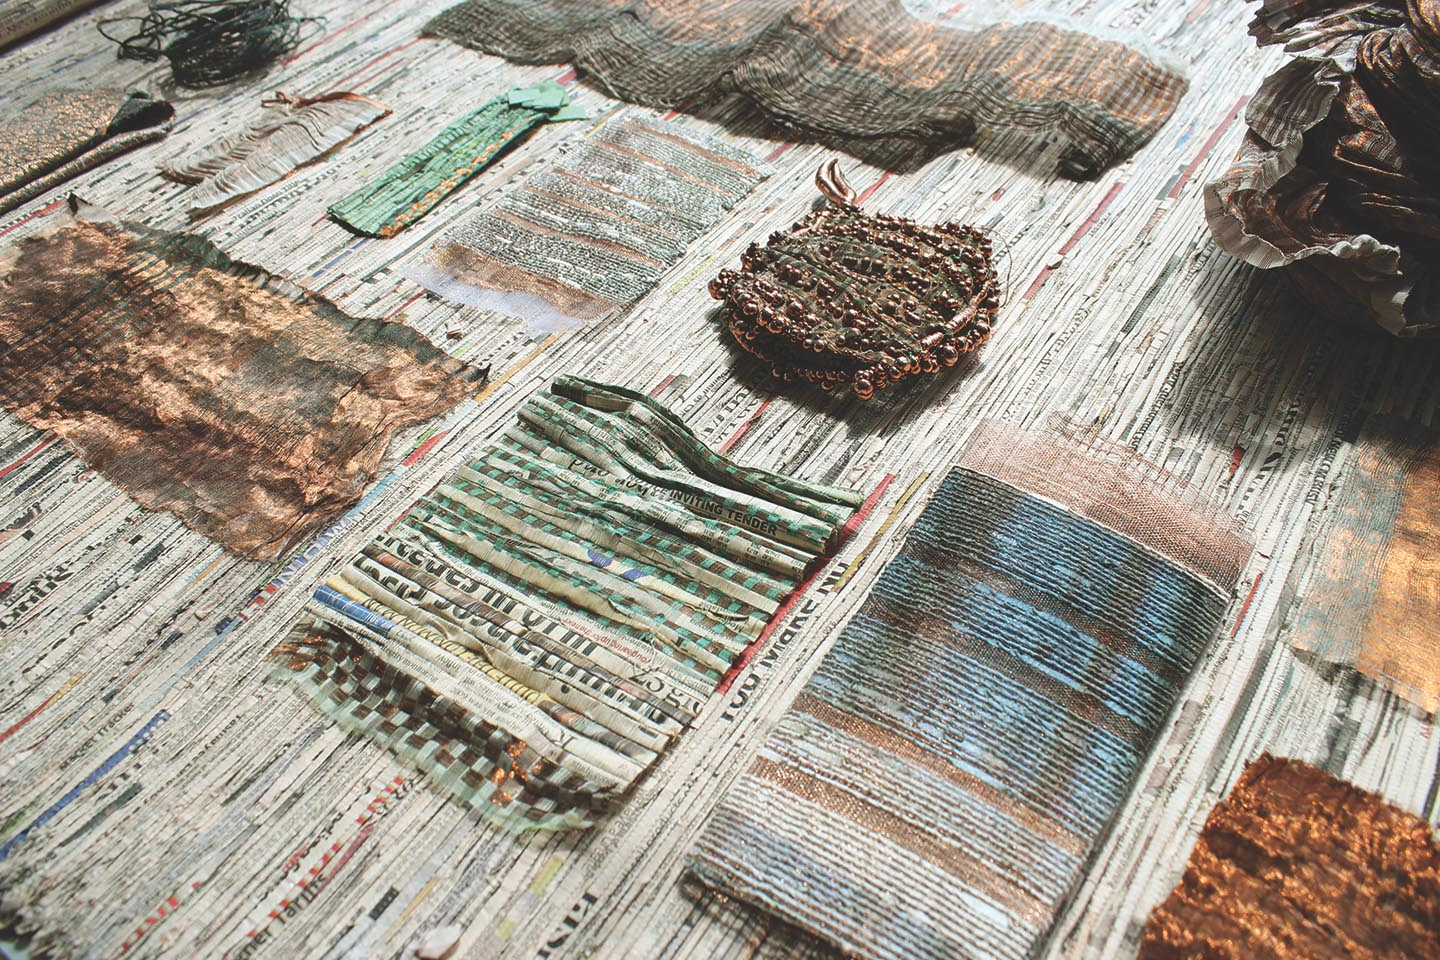 Integrating recycled paper yarn into the weave of copper wire allowed Neha Lad to create a less brittle, and more usable woven material.